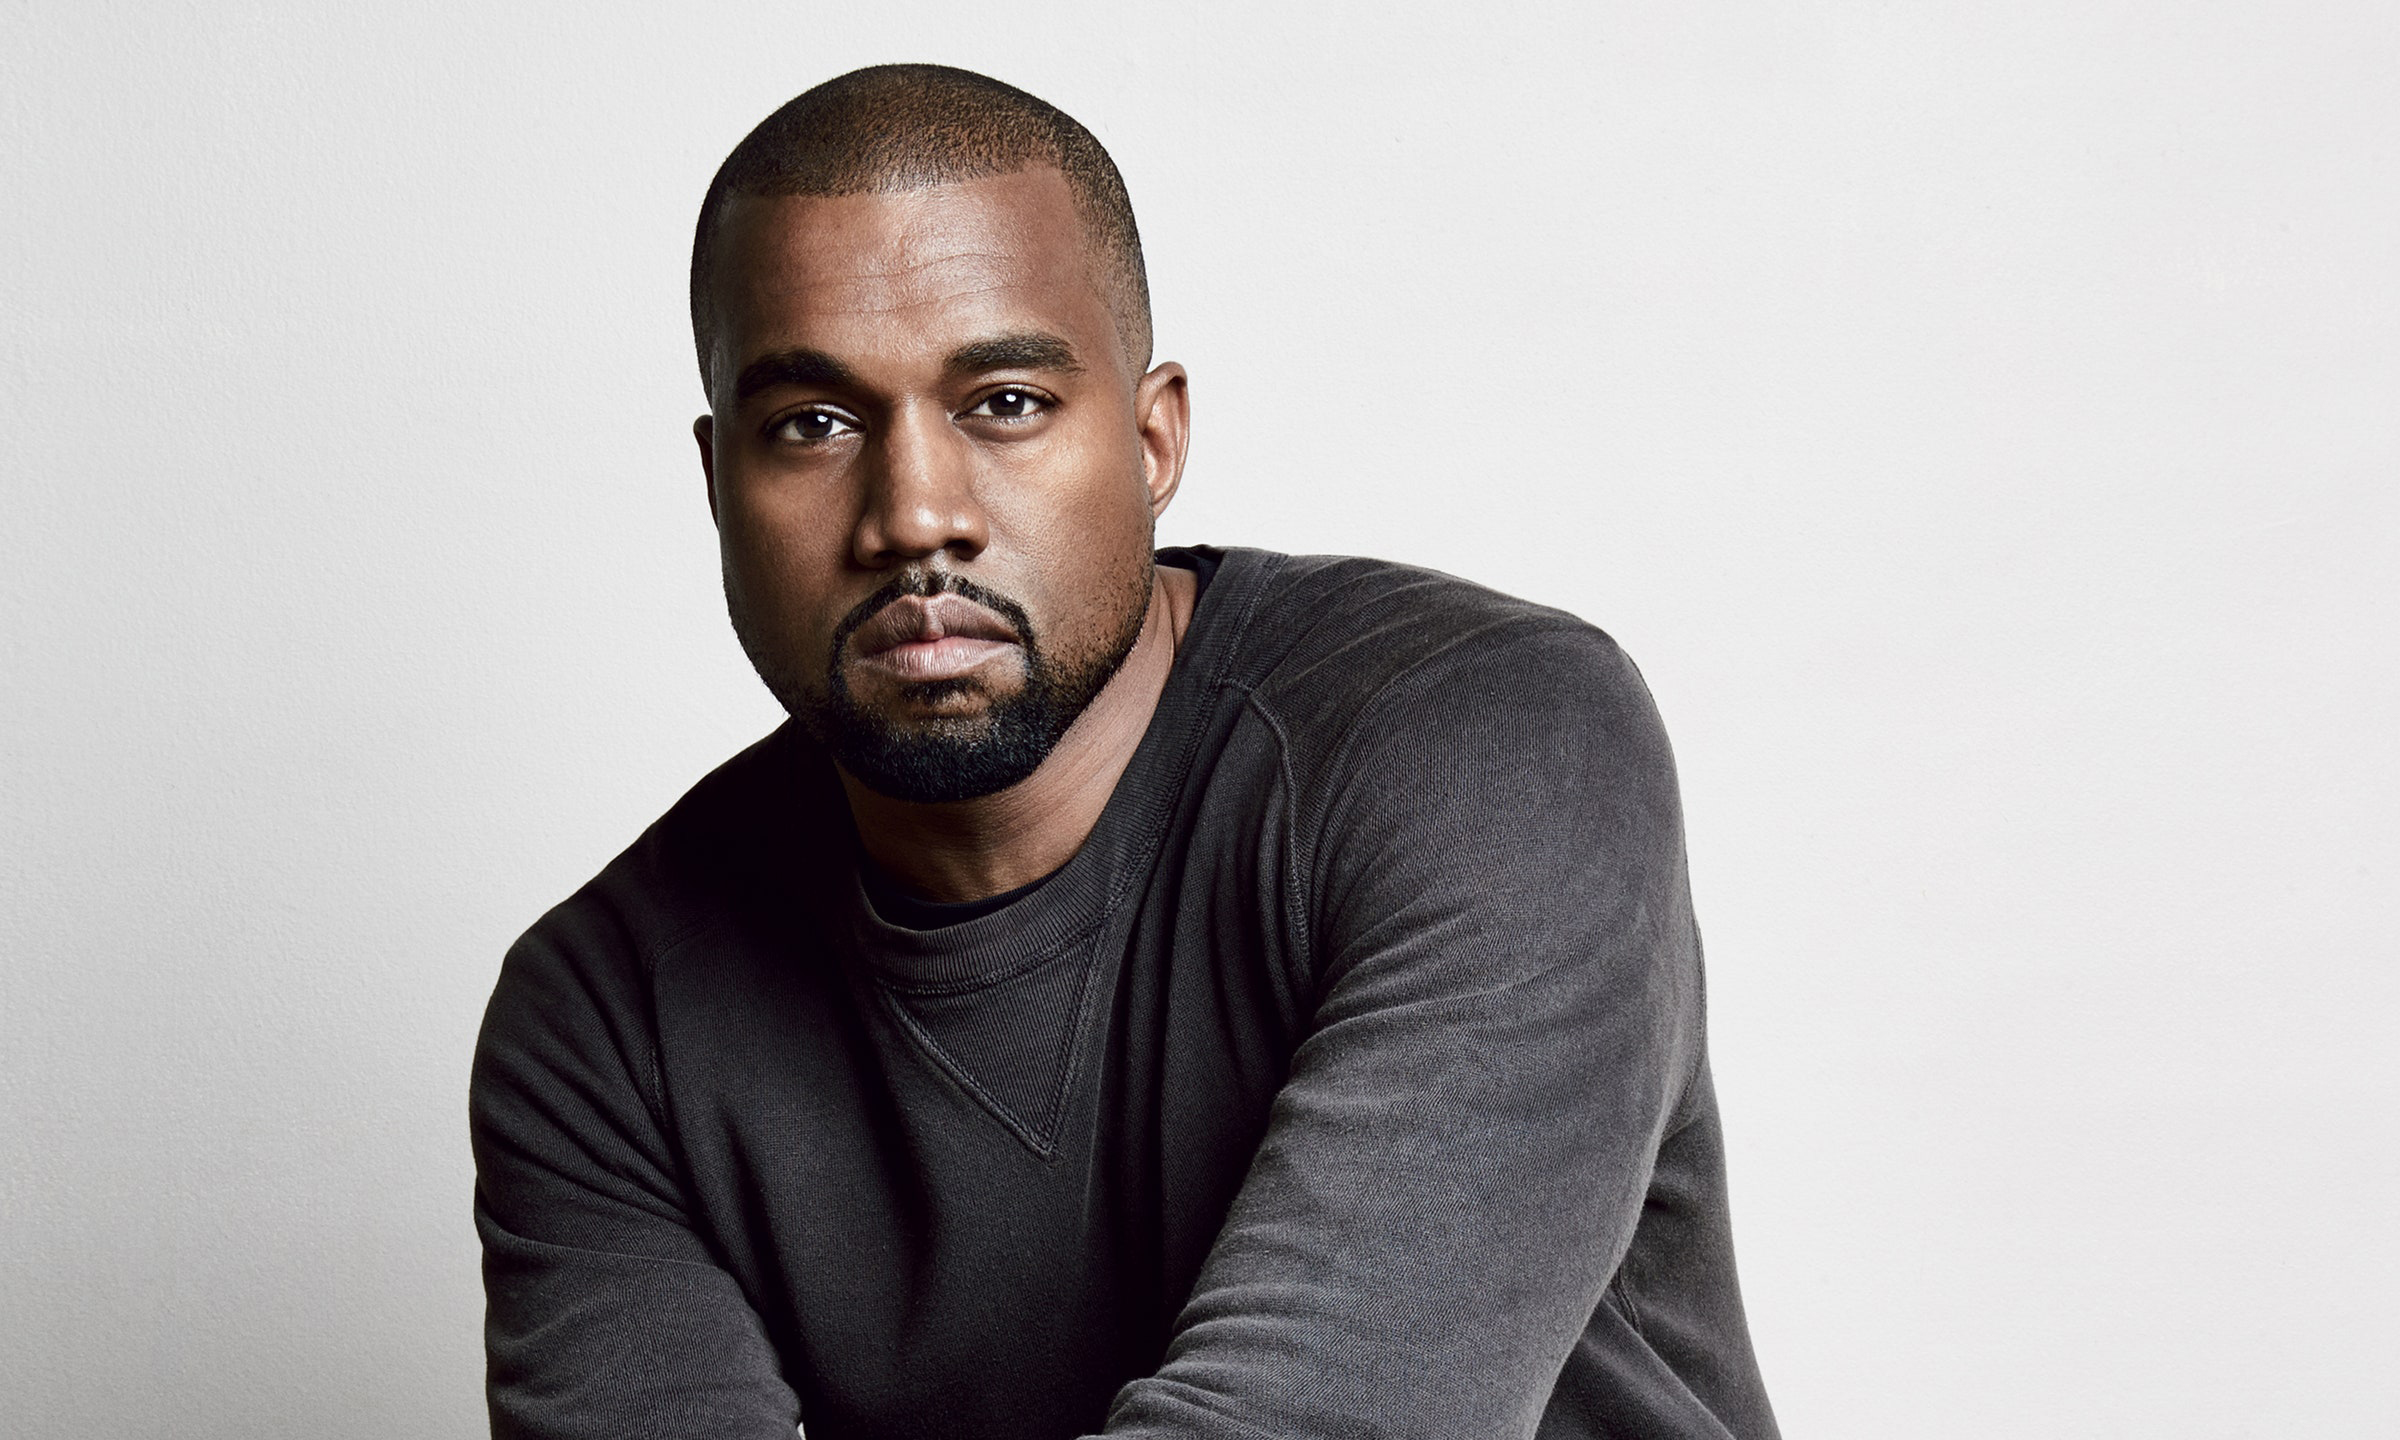 Kanye West 的下一张专辑,叫做《God's Country》?